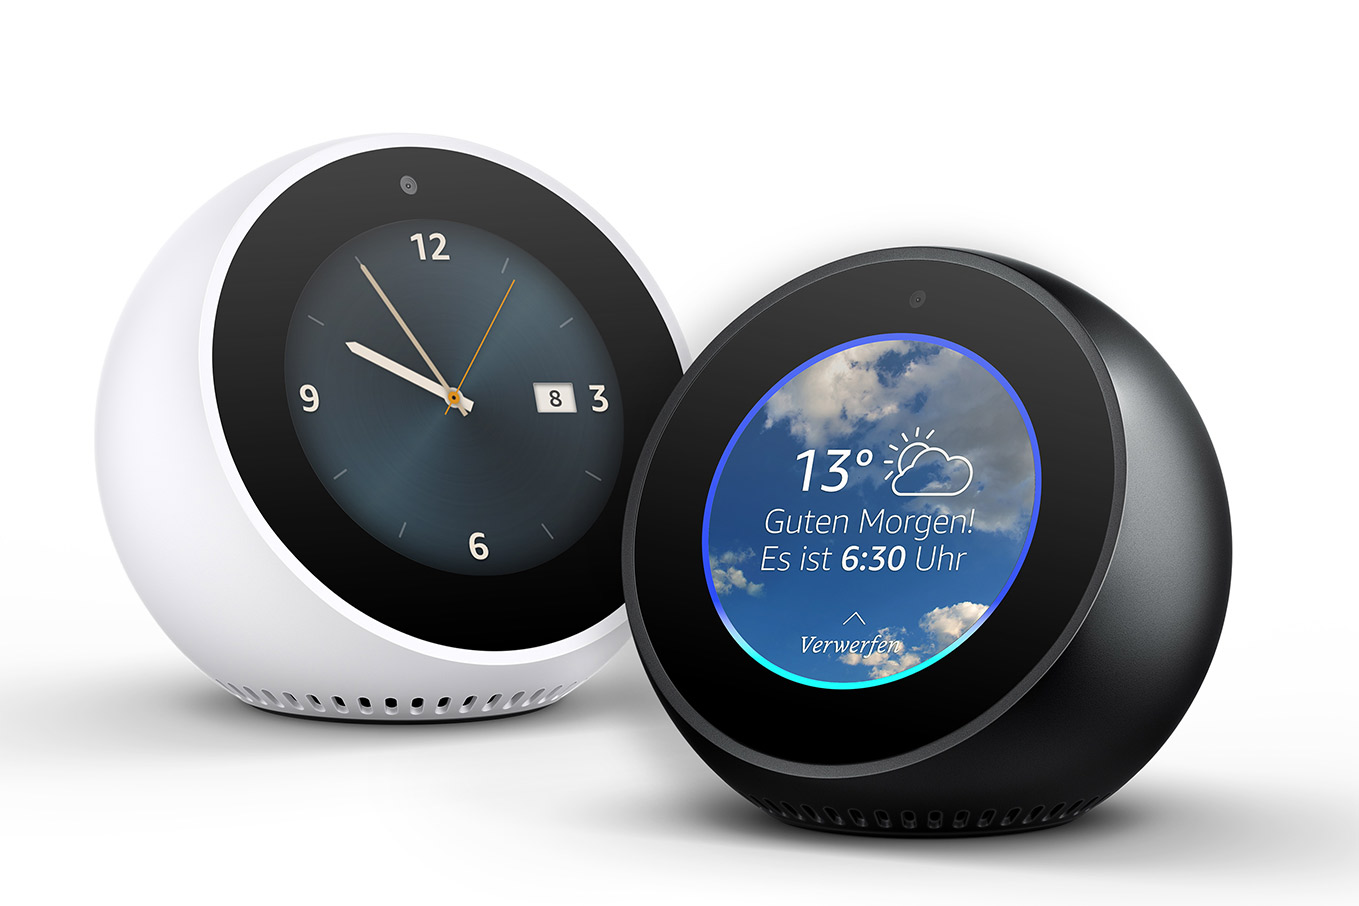 Echo Spot - Amazon Sprachsteuerung im Wecker Design mit Display